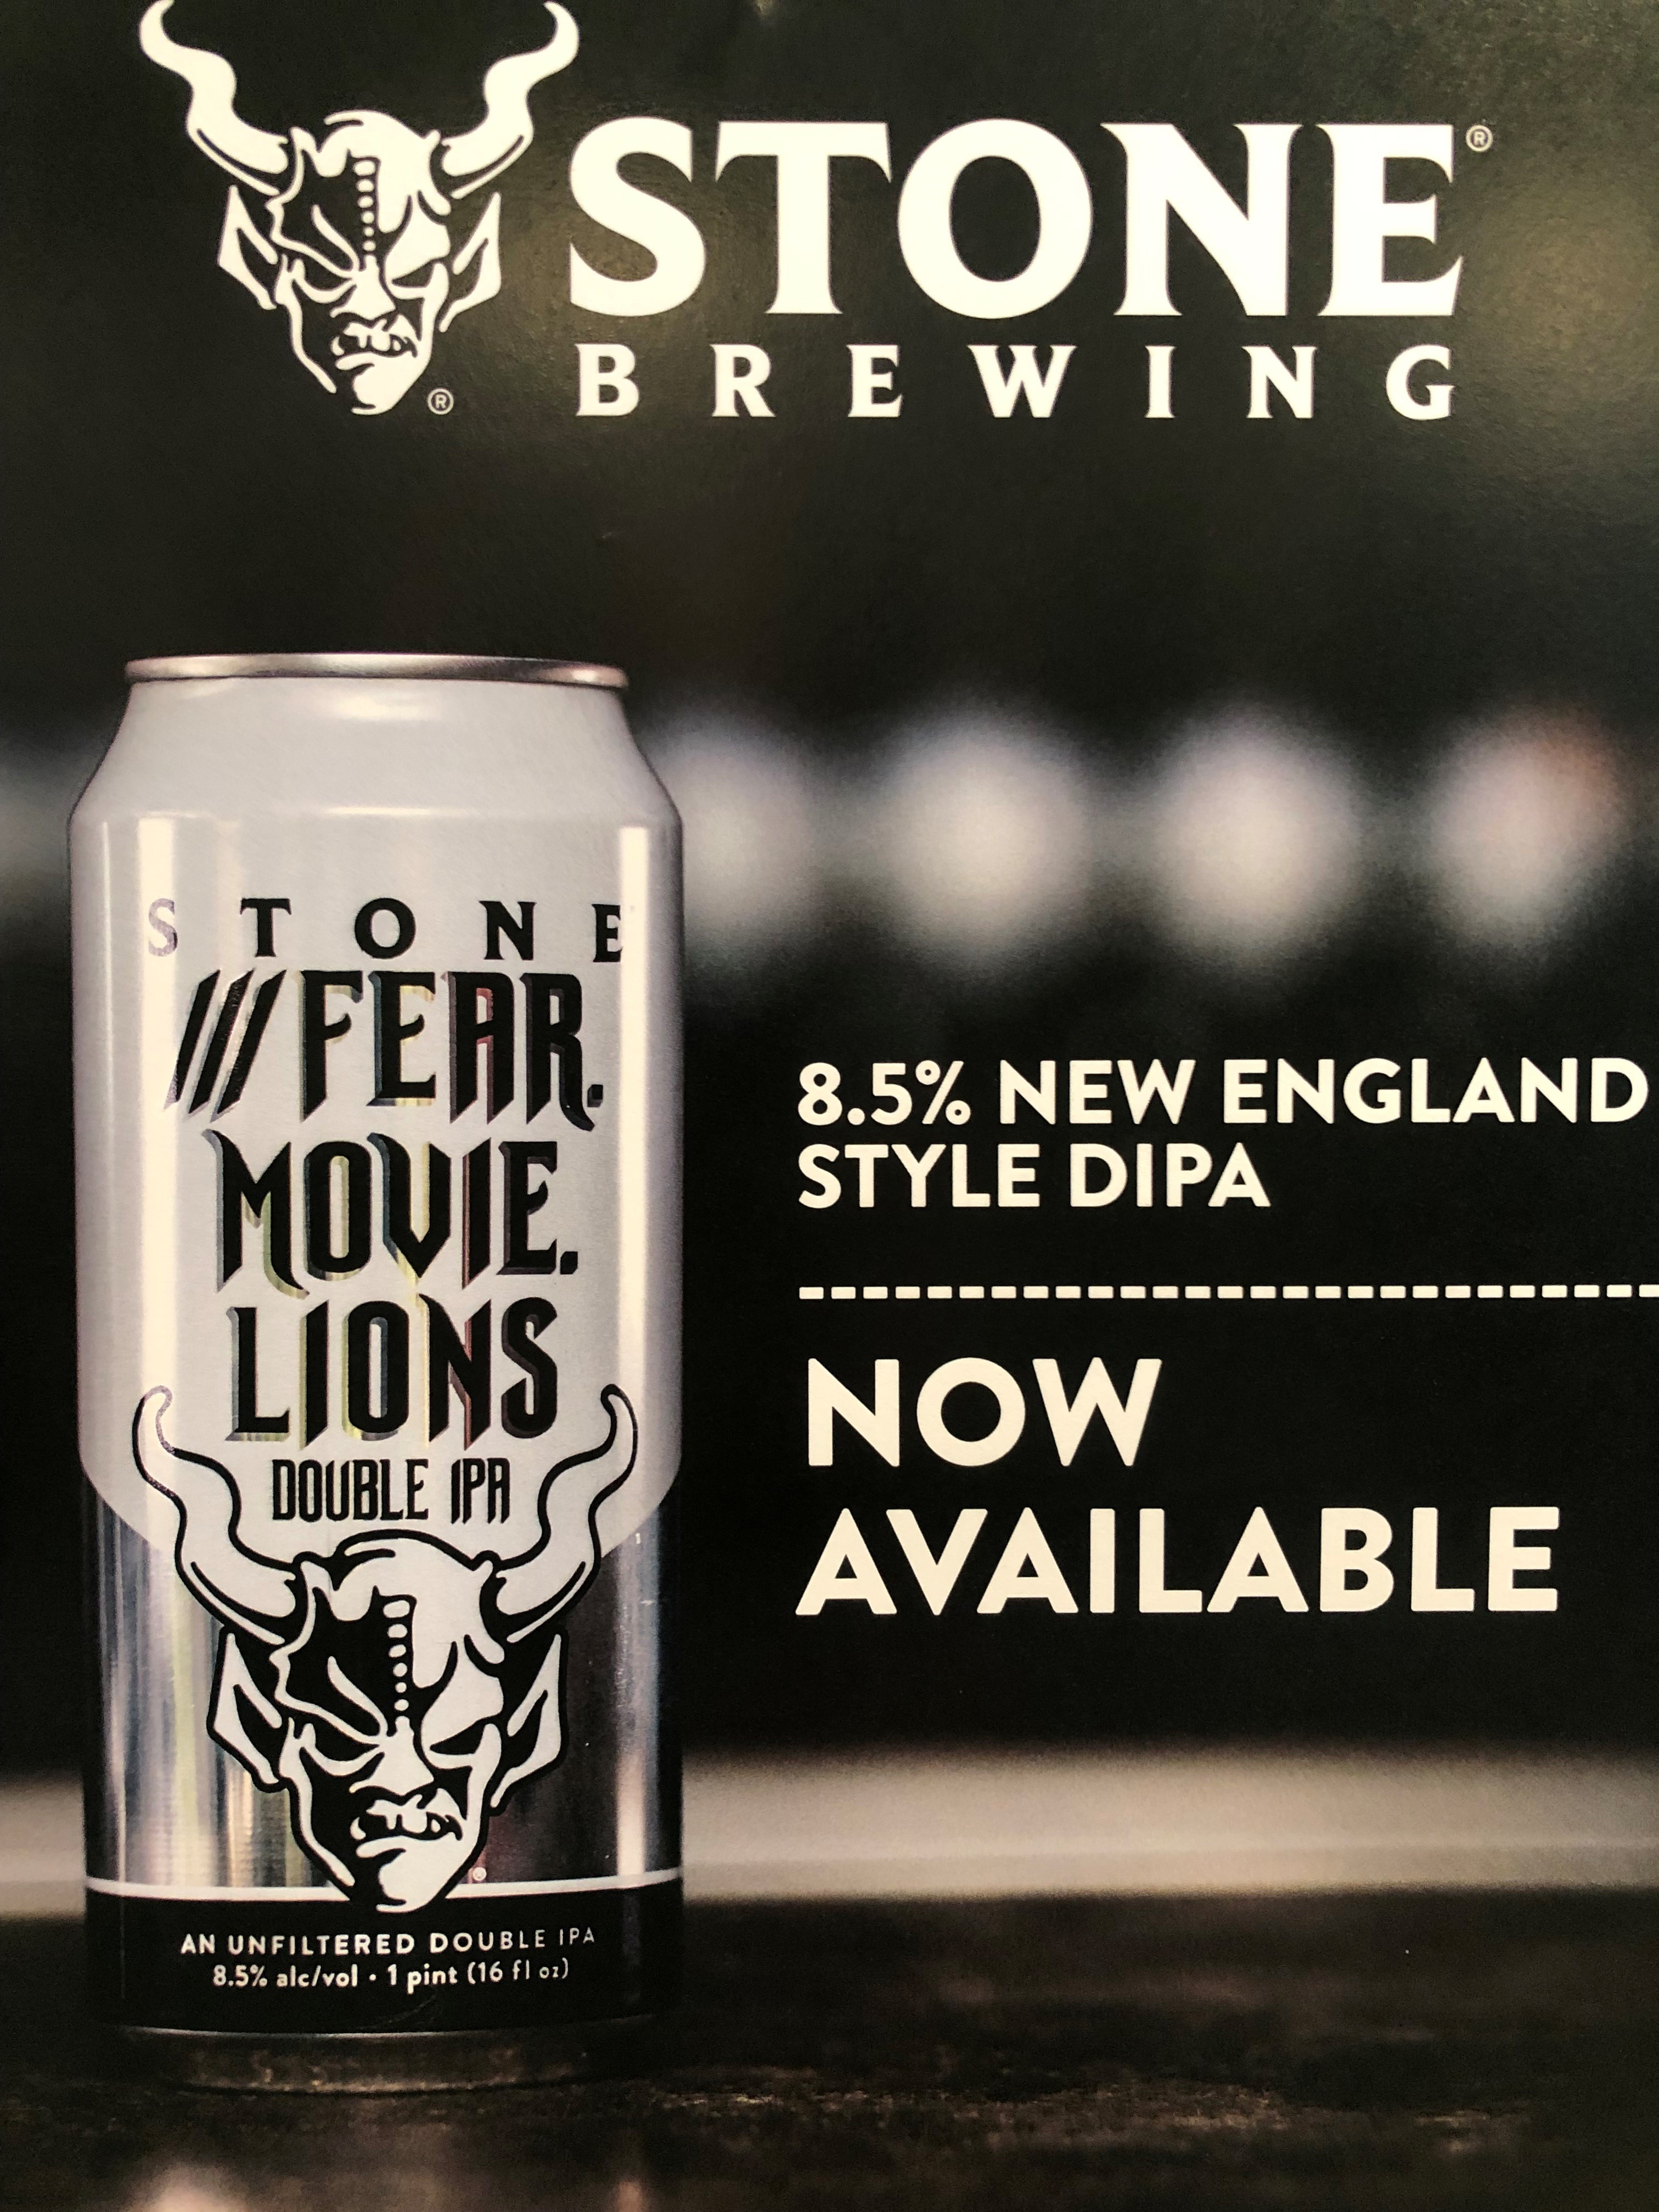 stone brewing. 8.5% new england style dipa now available